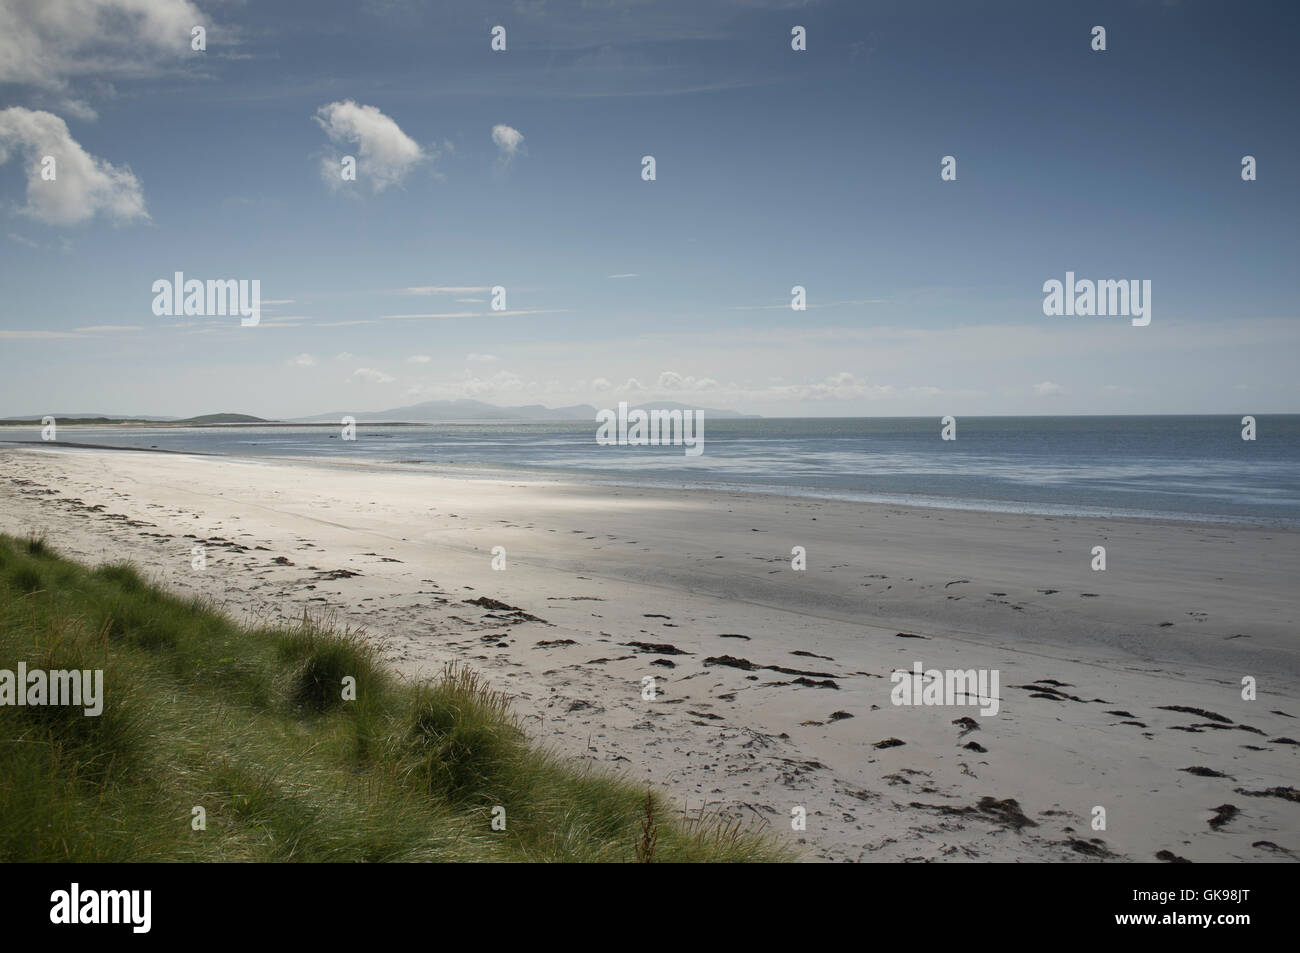 Large empty and unspoilt beach in the Outer Hebrides island of South Uist - Stock Image